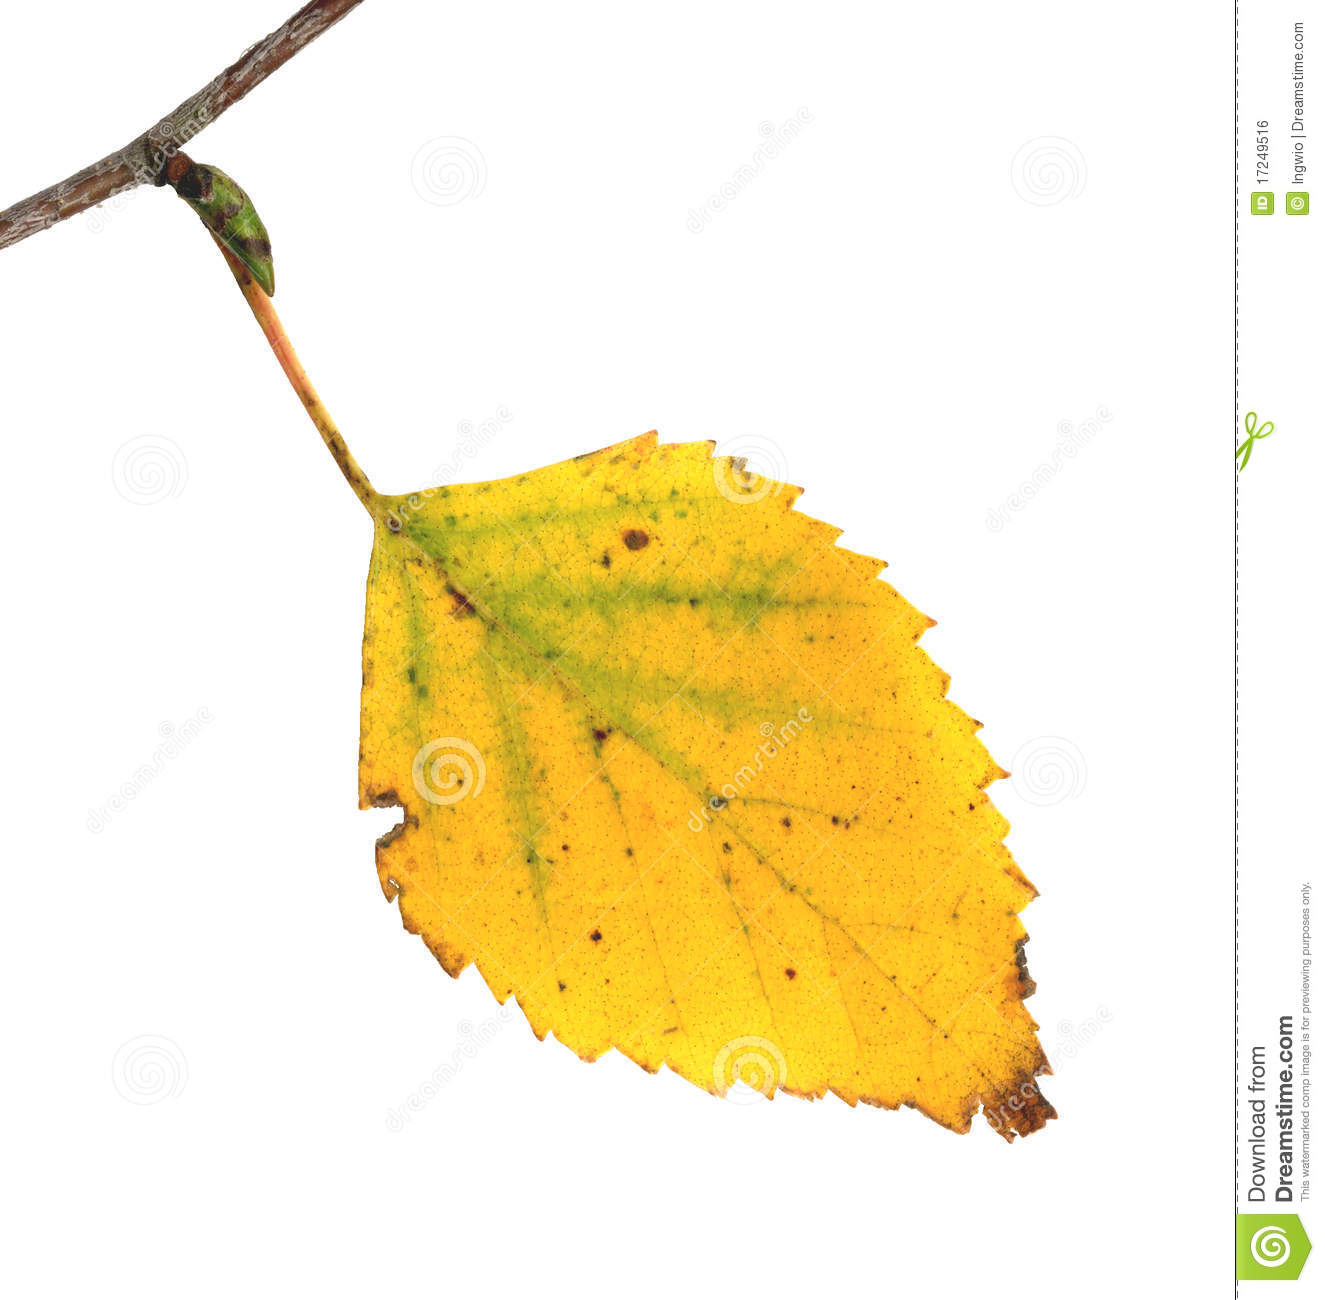 ... similar stock images of ` Leaf at a twig of a Silver Birch in autumn